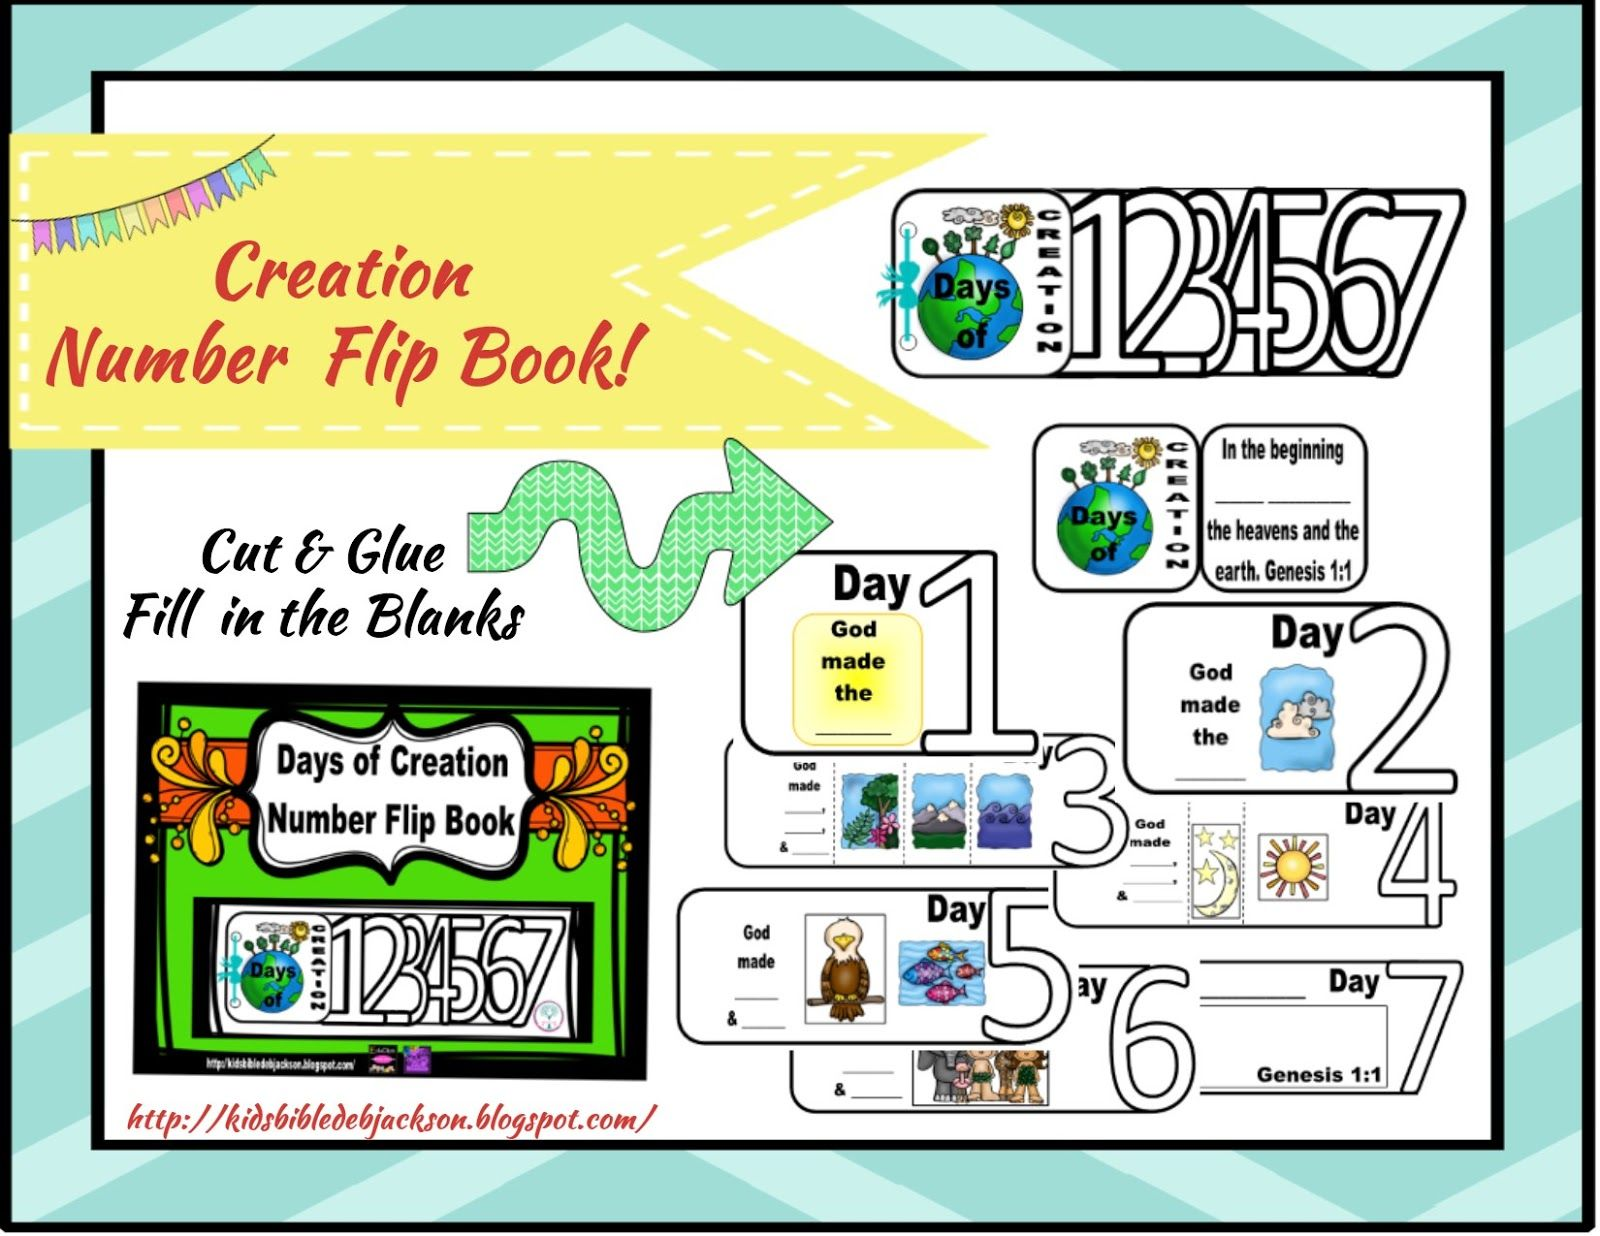 The Creation For Kids Day 4 Creation Number Flip Book